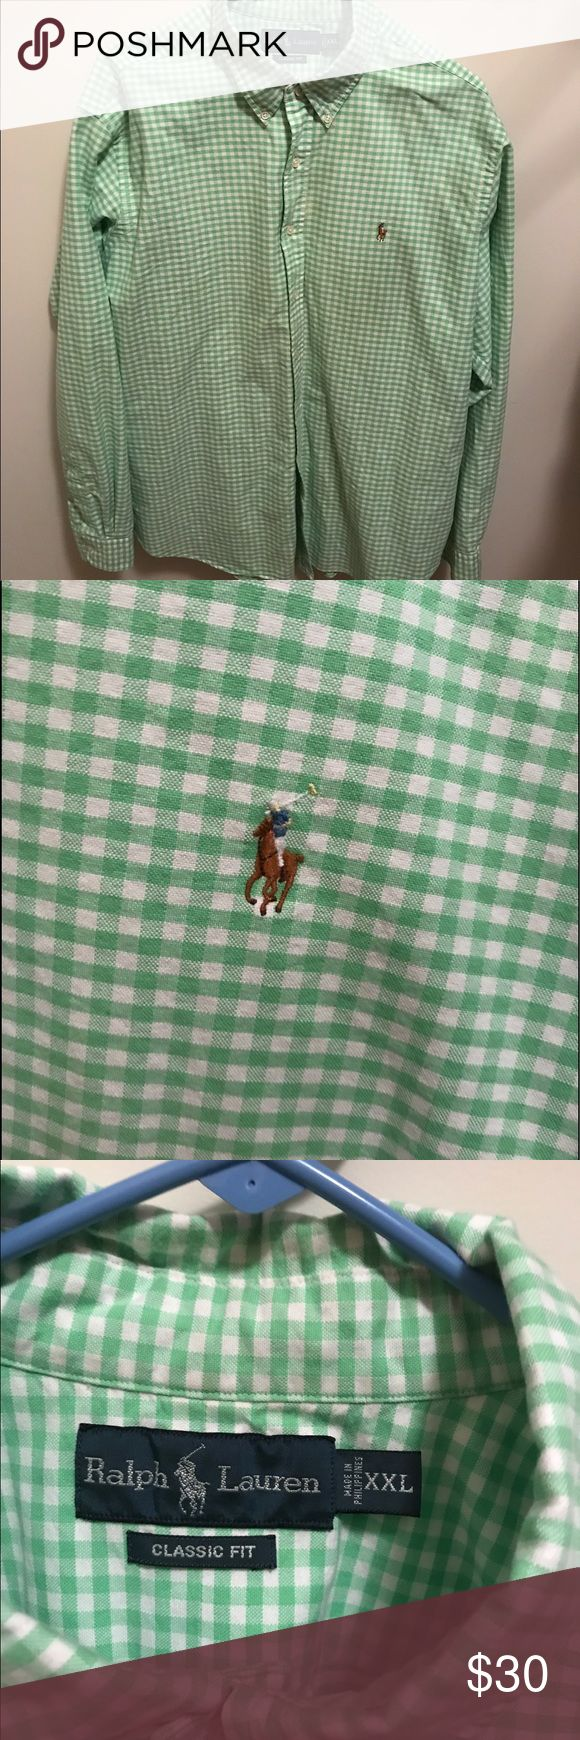 Ralph Lauren classic gingham green button down XXL Classic fit Ralph Lauren gingham shirt in green. Size XXL. Worn 5-6 times. Like new! Goes great with jeans or khakis and shorts!  Please find exact sizing online- classic fit. No stains or rips. Ralph Lauren Shirts Casual Button Down Shirts